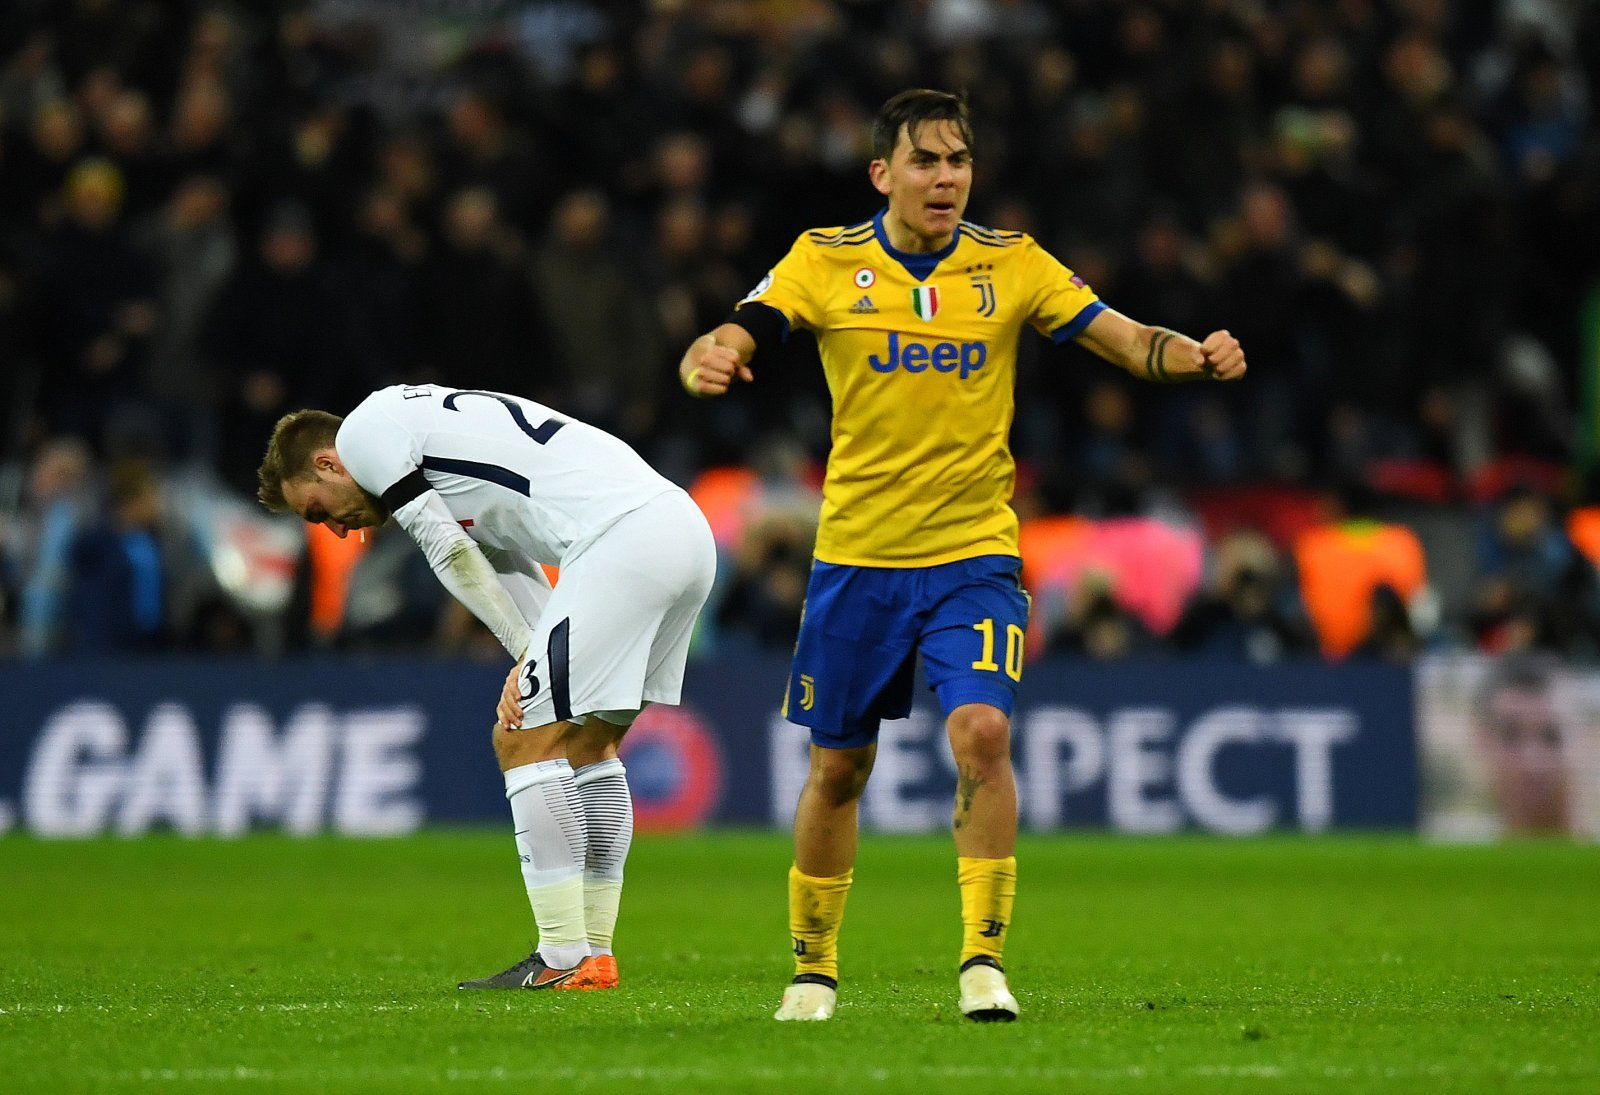 Tottenham Hotspur: Lilywhites attempted to sign Paulo Dybala on loan on deadline day